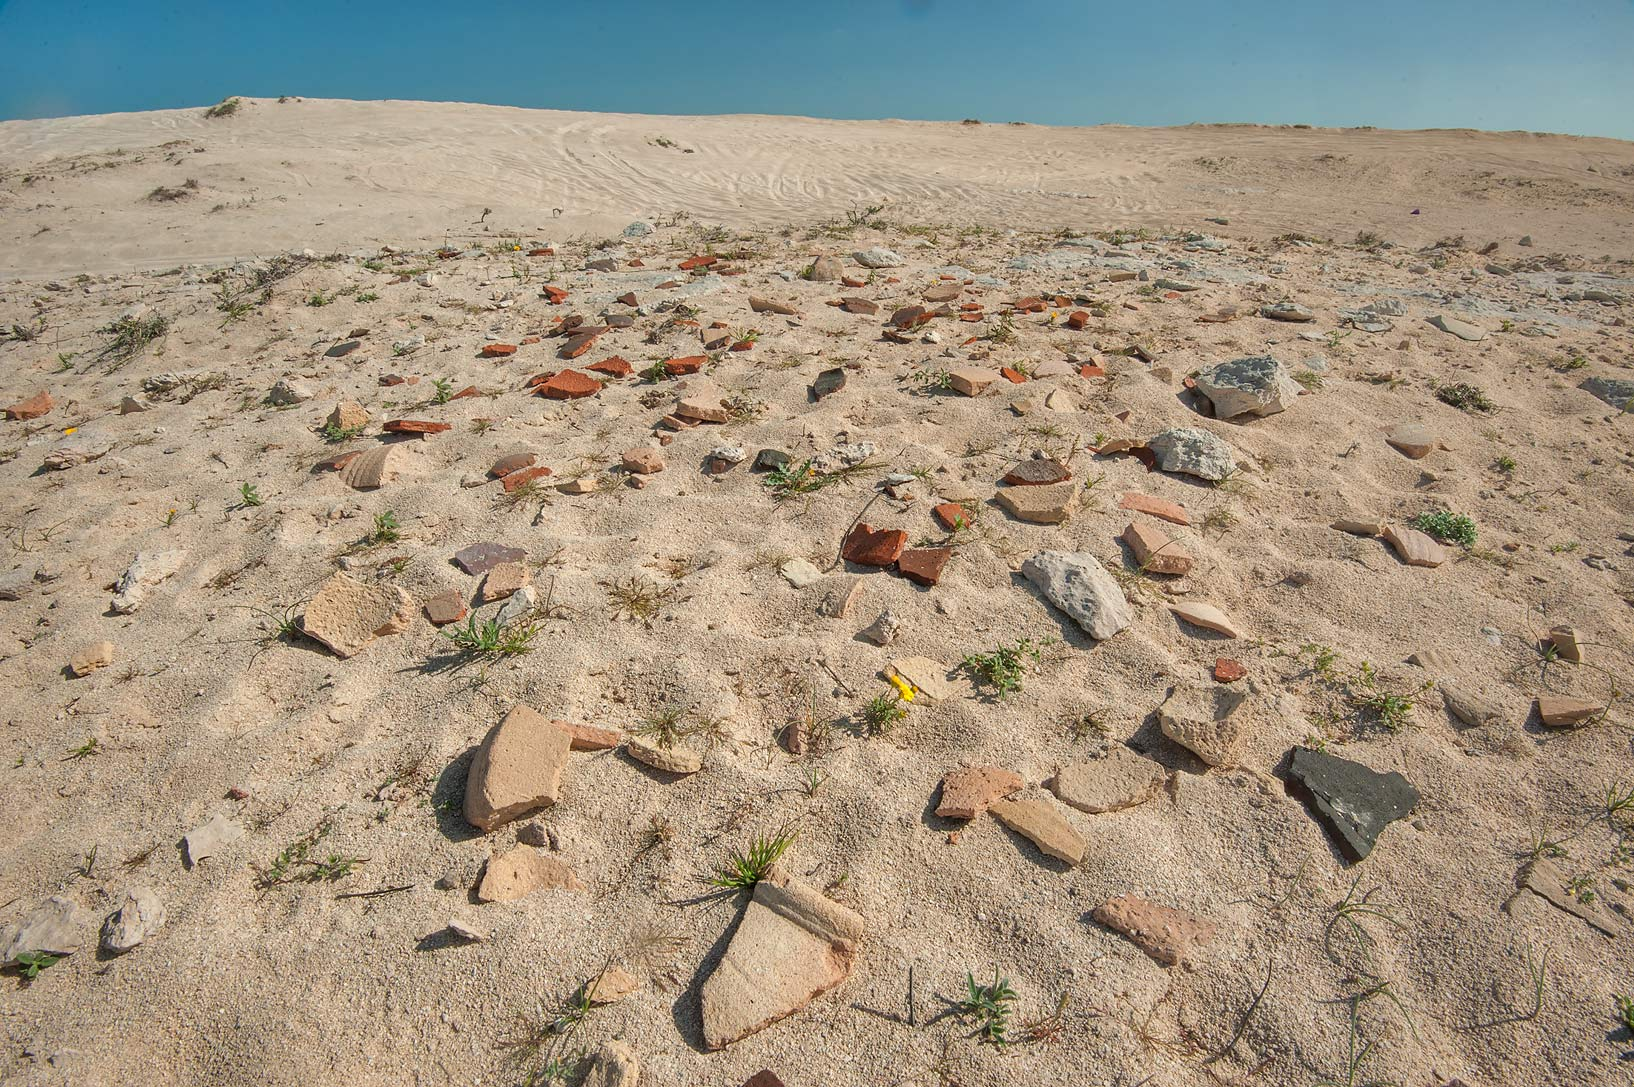 Potsherds (fragments of pottery) in sand south from Fuwairit. Northern Qatar